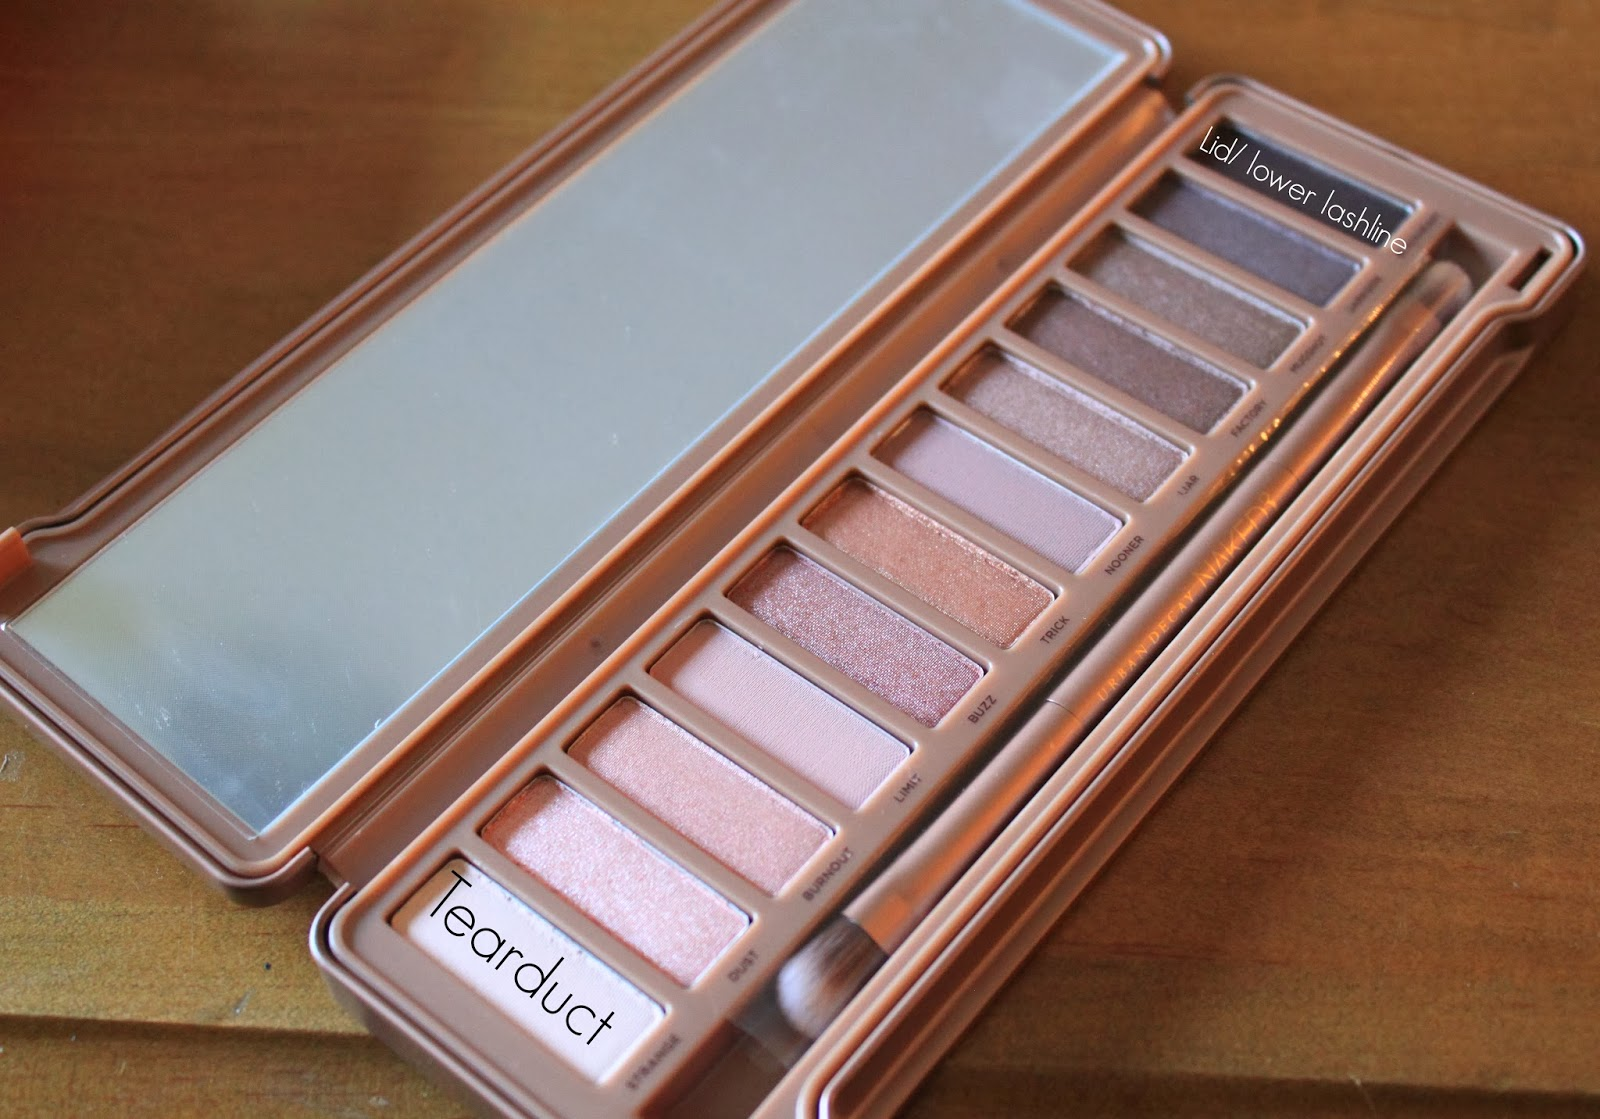 Beauty blogger Mash Elle shares a night out smokey eye using Urban Decay's Naked 3 palette